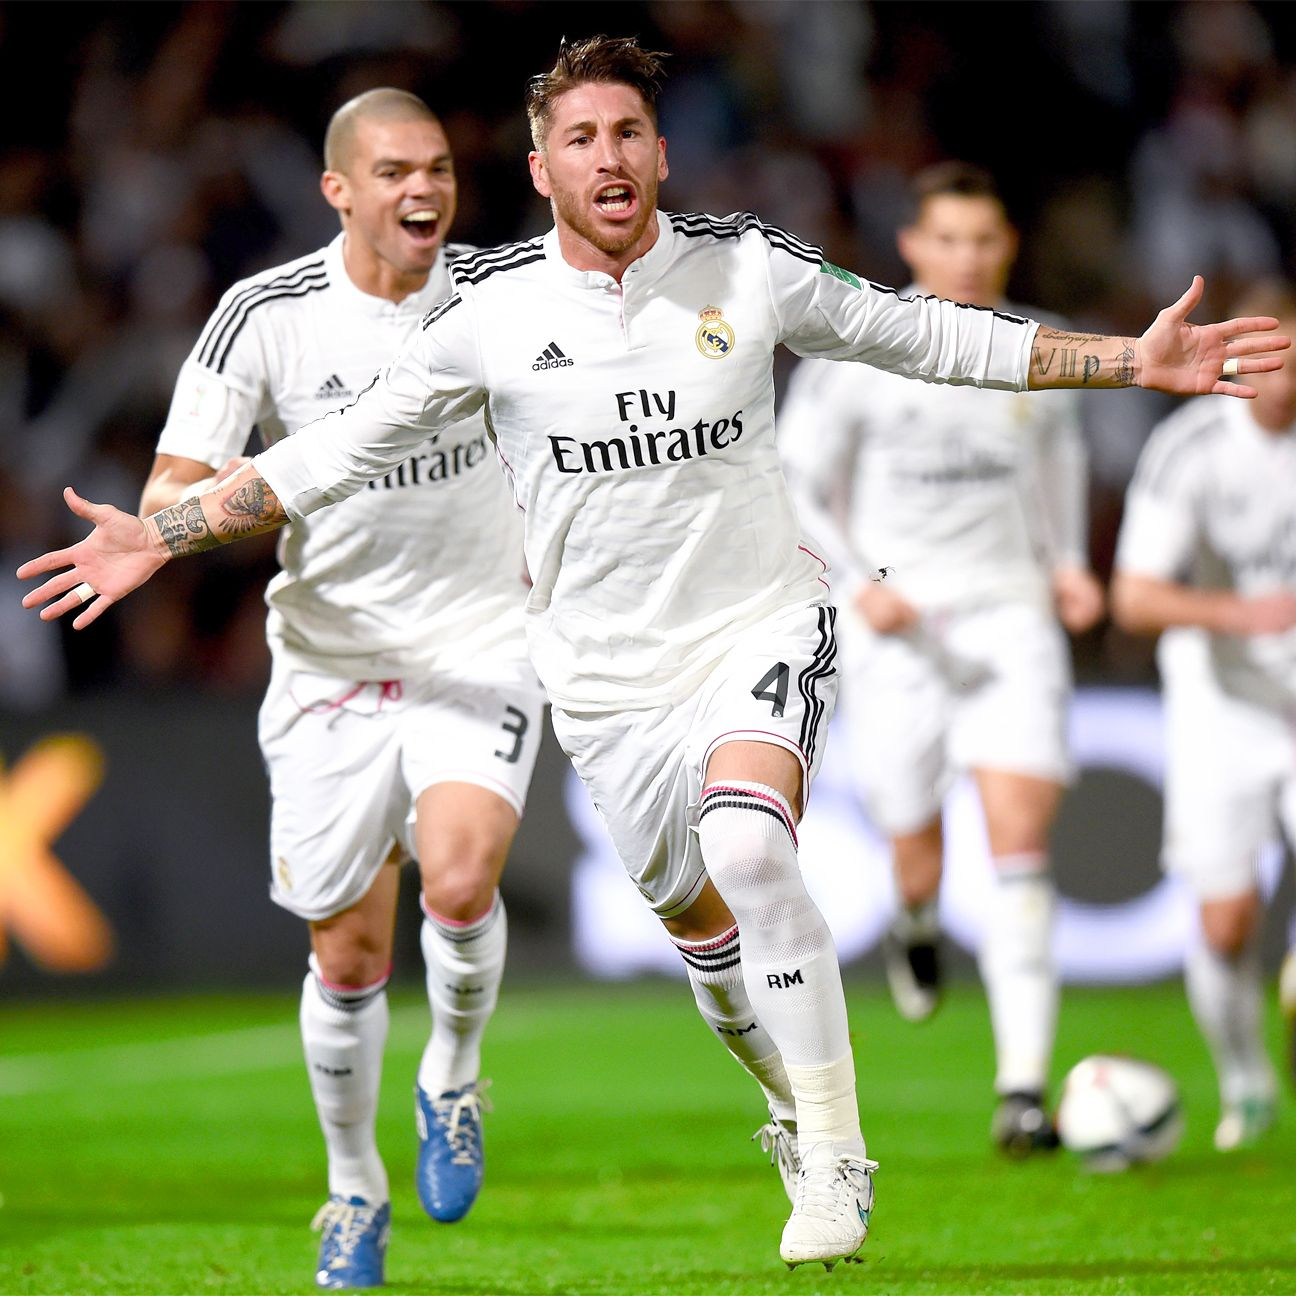 Much like their Champions League run, it was a Sergio Ramos header that put Real Madrid on the scoreboard in their Club World Cup semifinal versus Cruz Azul.